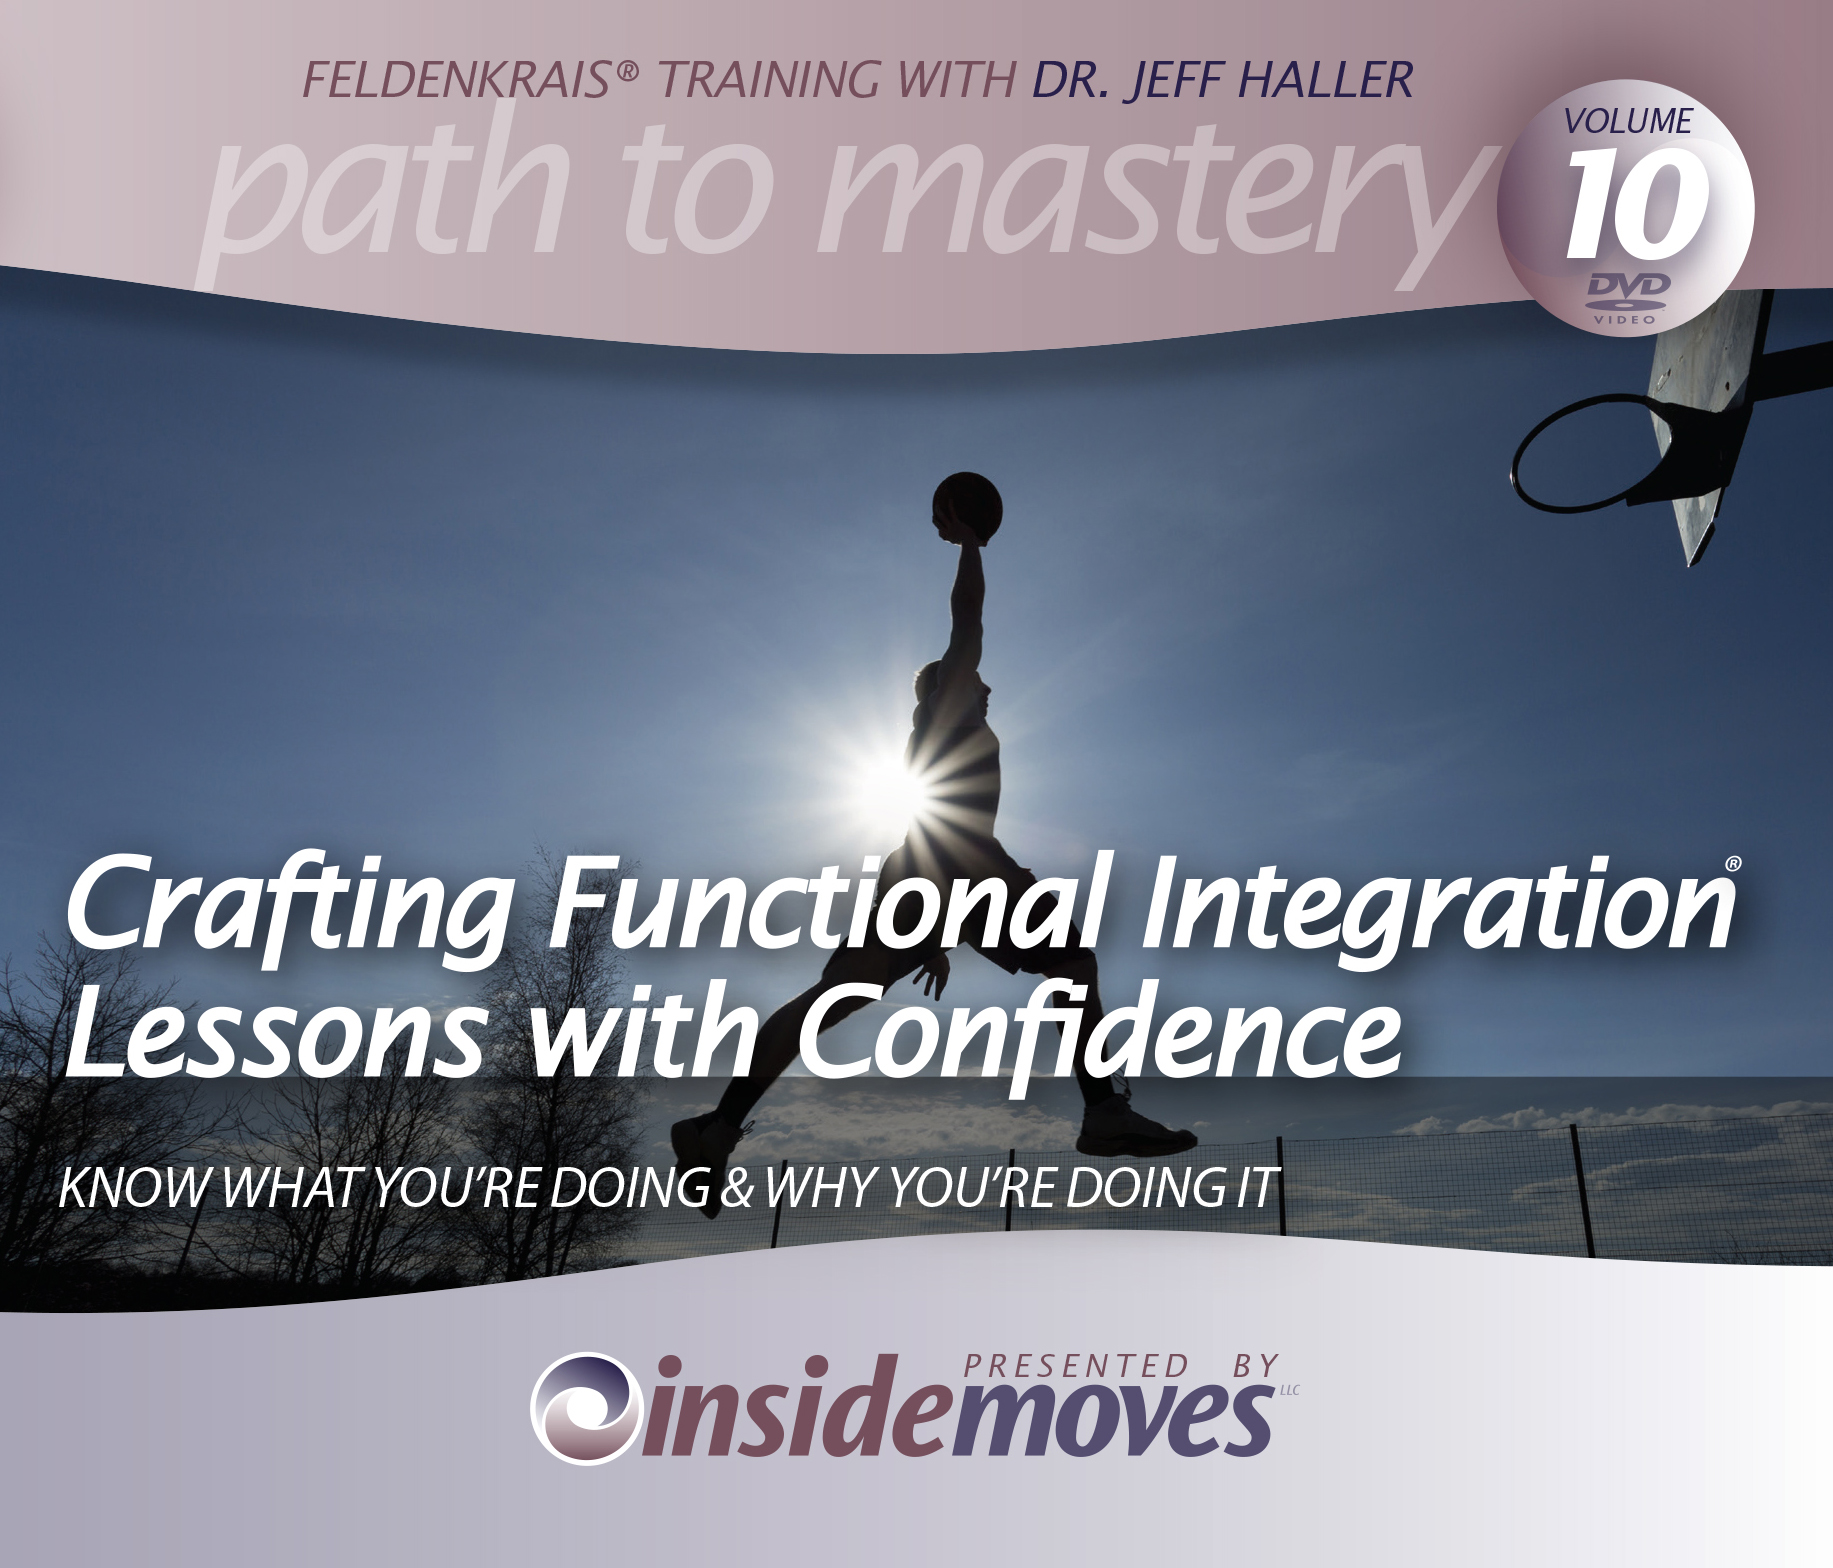 Crafting Functional Integration® Lessons with Confidence: Know What You're Doing & Why You're Doing It [DVD VERSION]